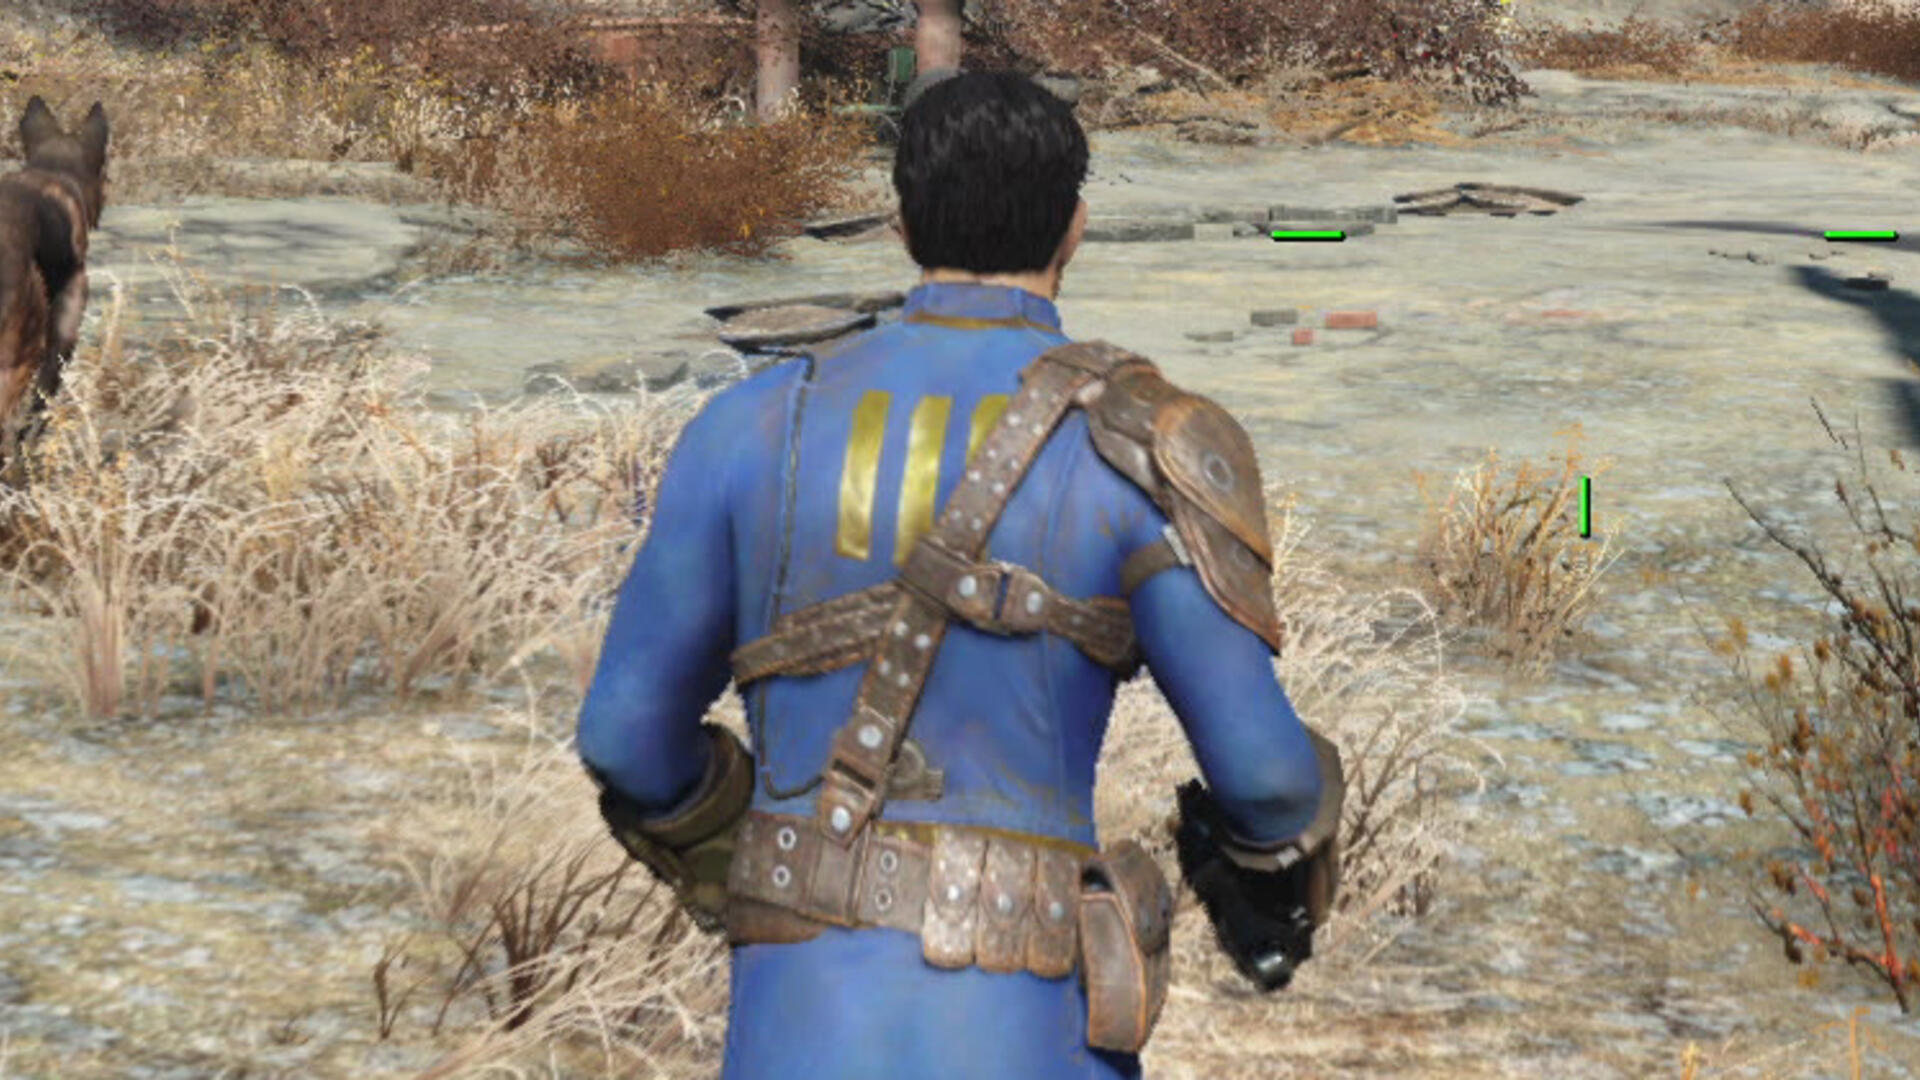 Fallout 4: Hacking and Lockpicking Guide | USgamer